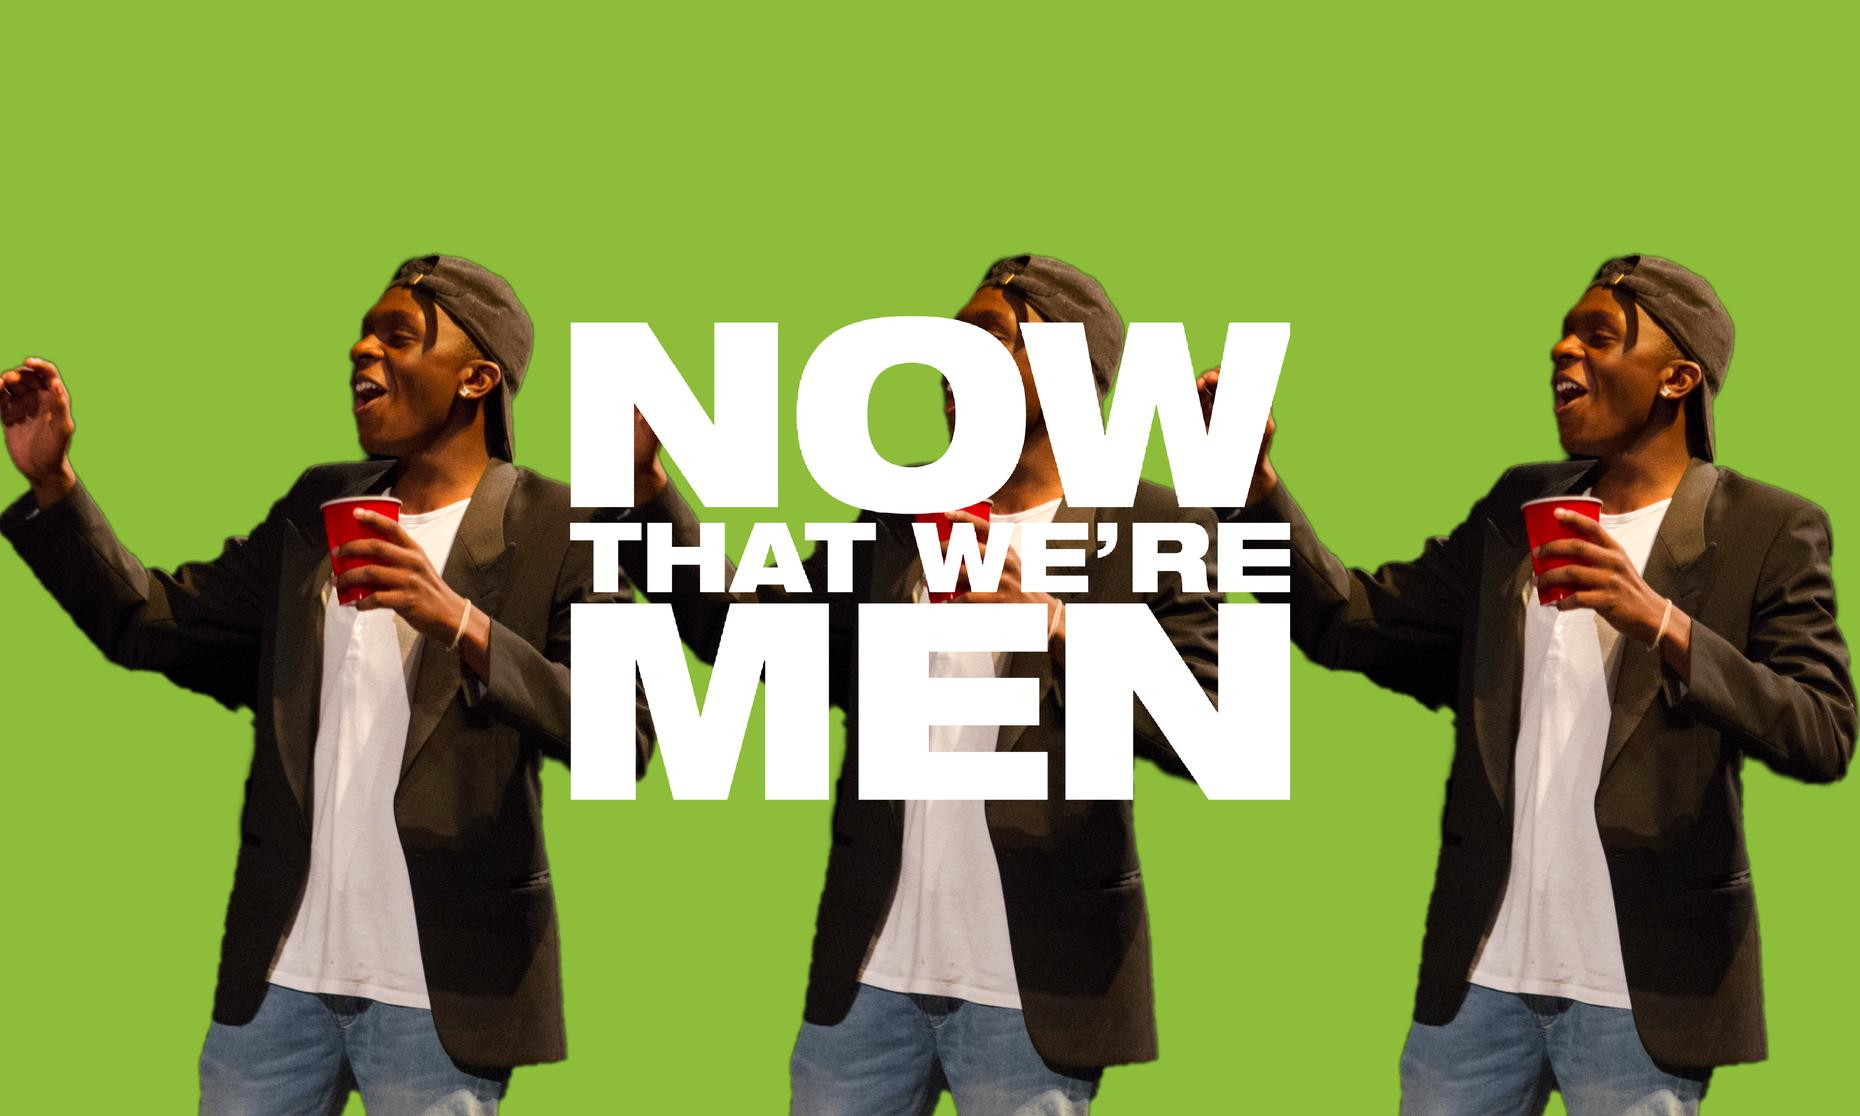 Now That We're Men: The Play